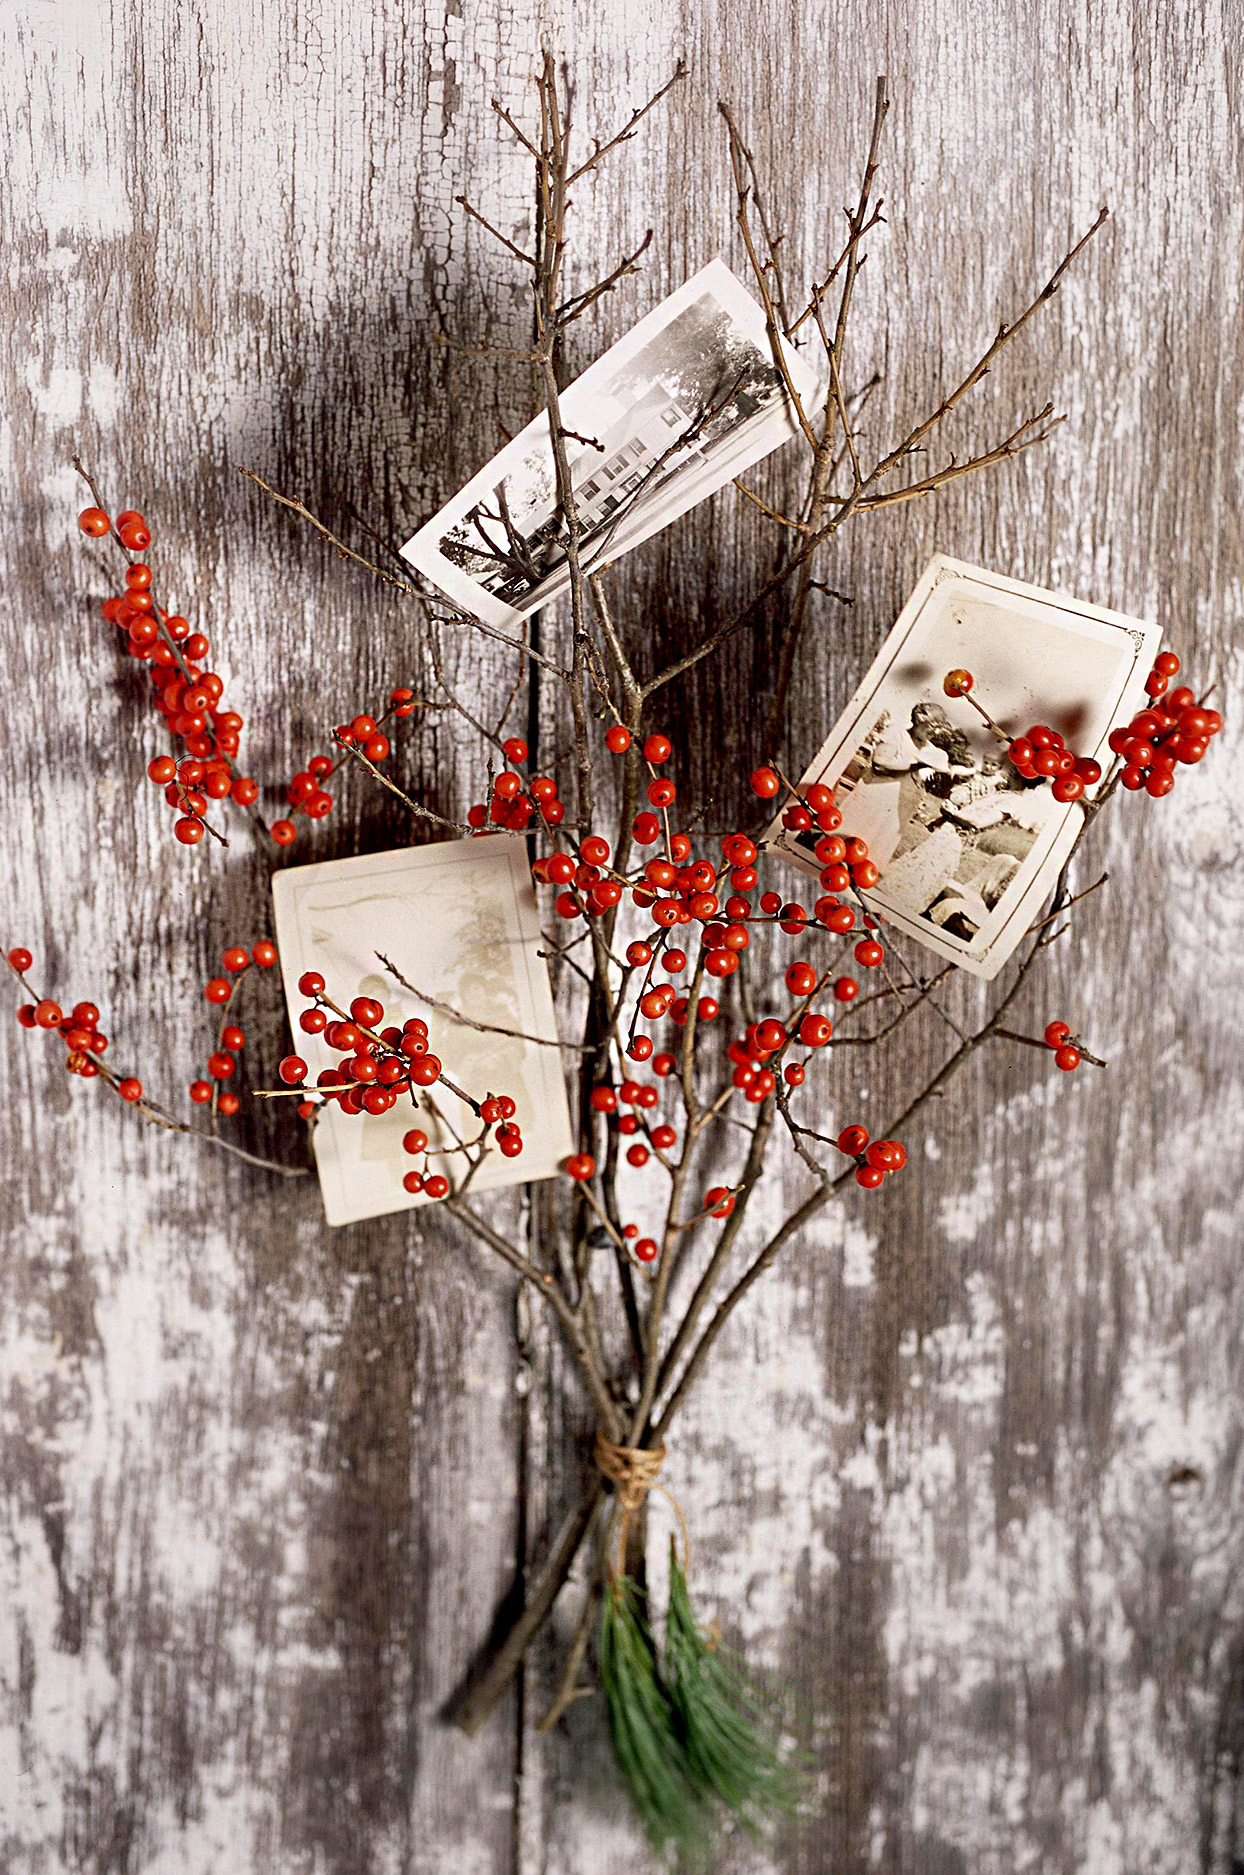 Branches with berries and photos